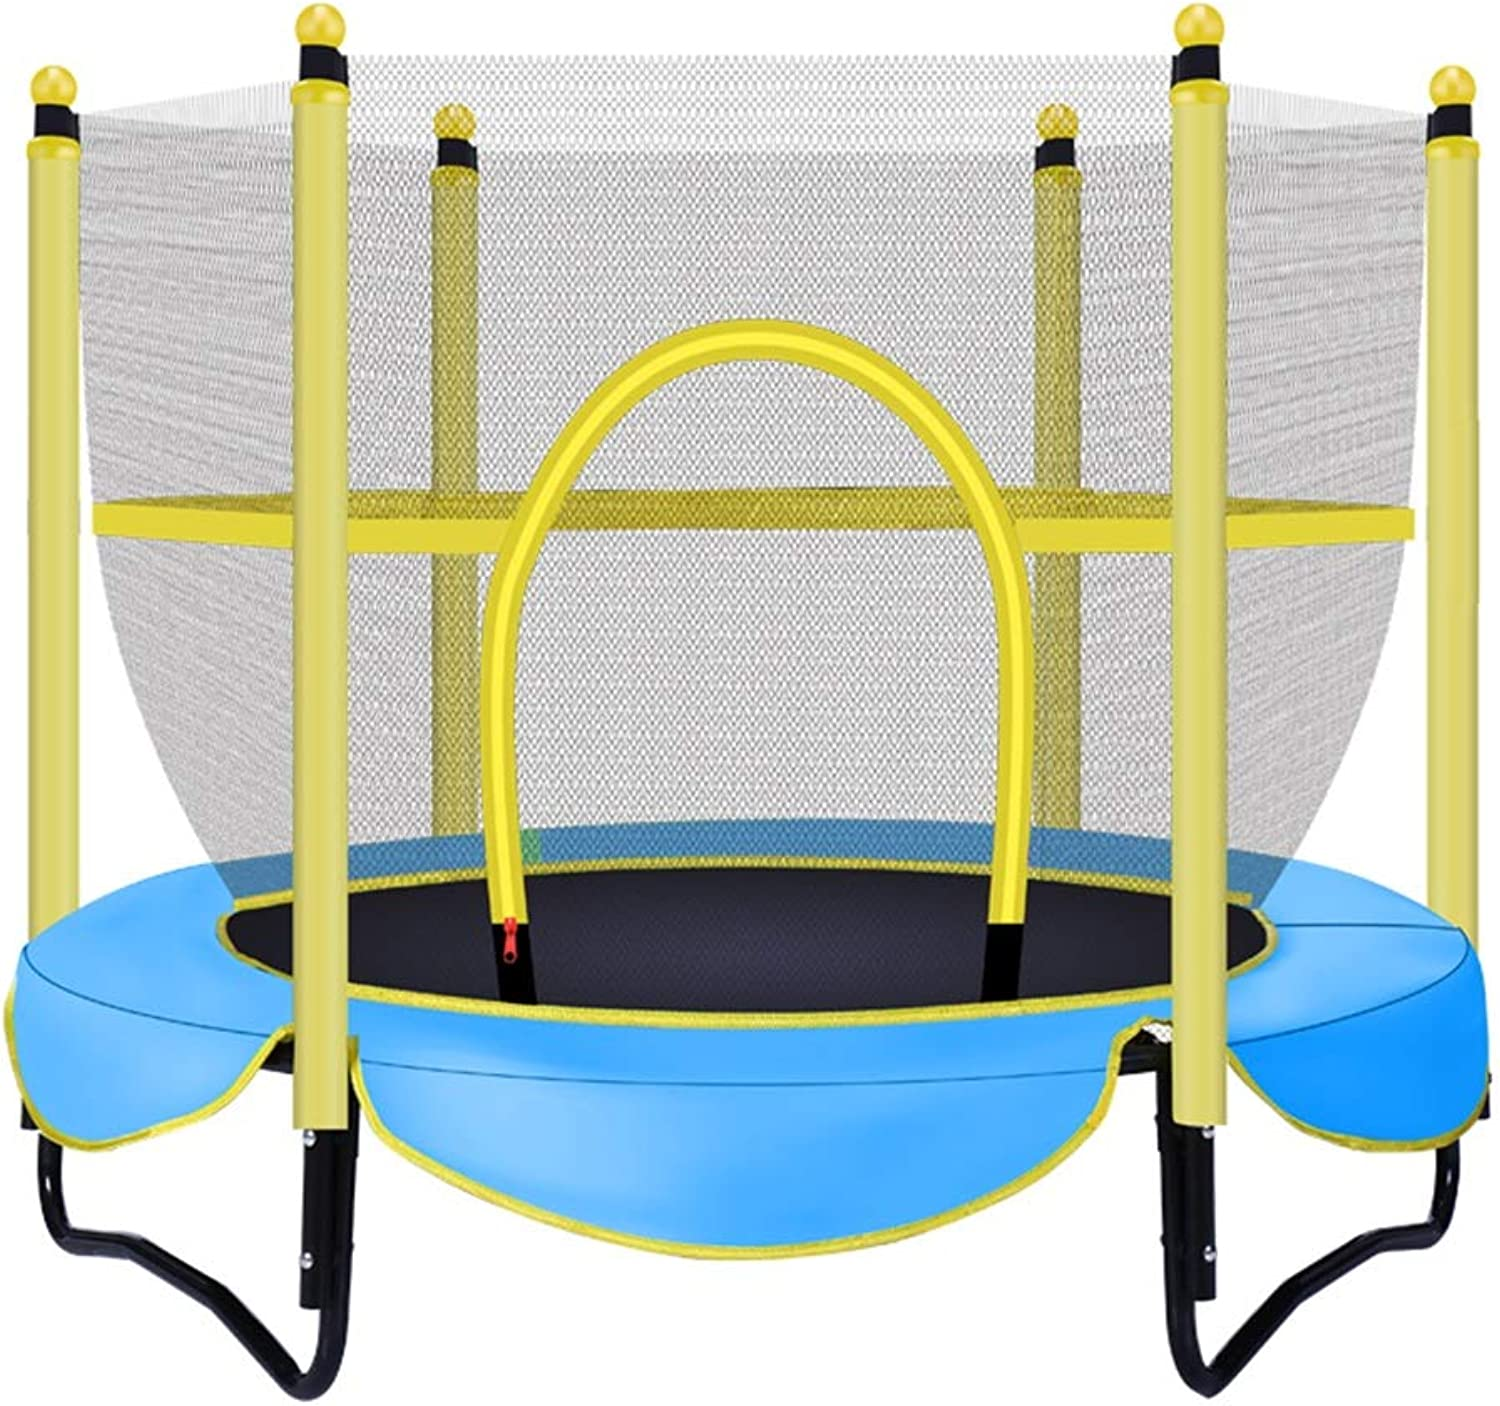 Indoor Trampoline with Enclosure  Bounce Game Outdoor Game for Beach, Yard, Lawn, Support 200kg (color   blueee)